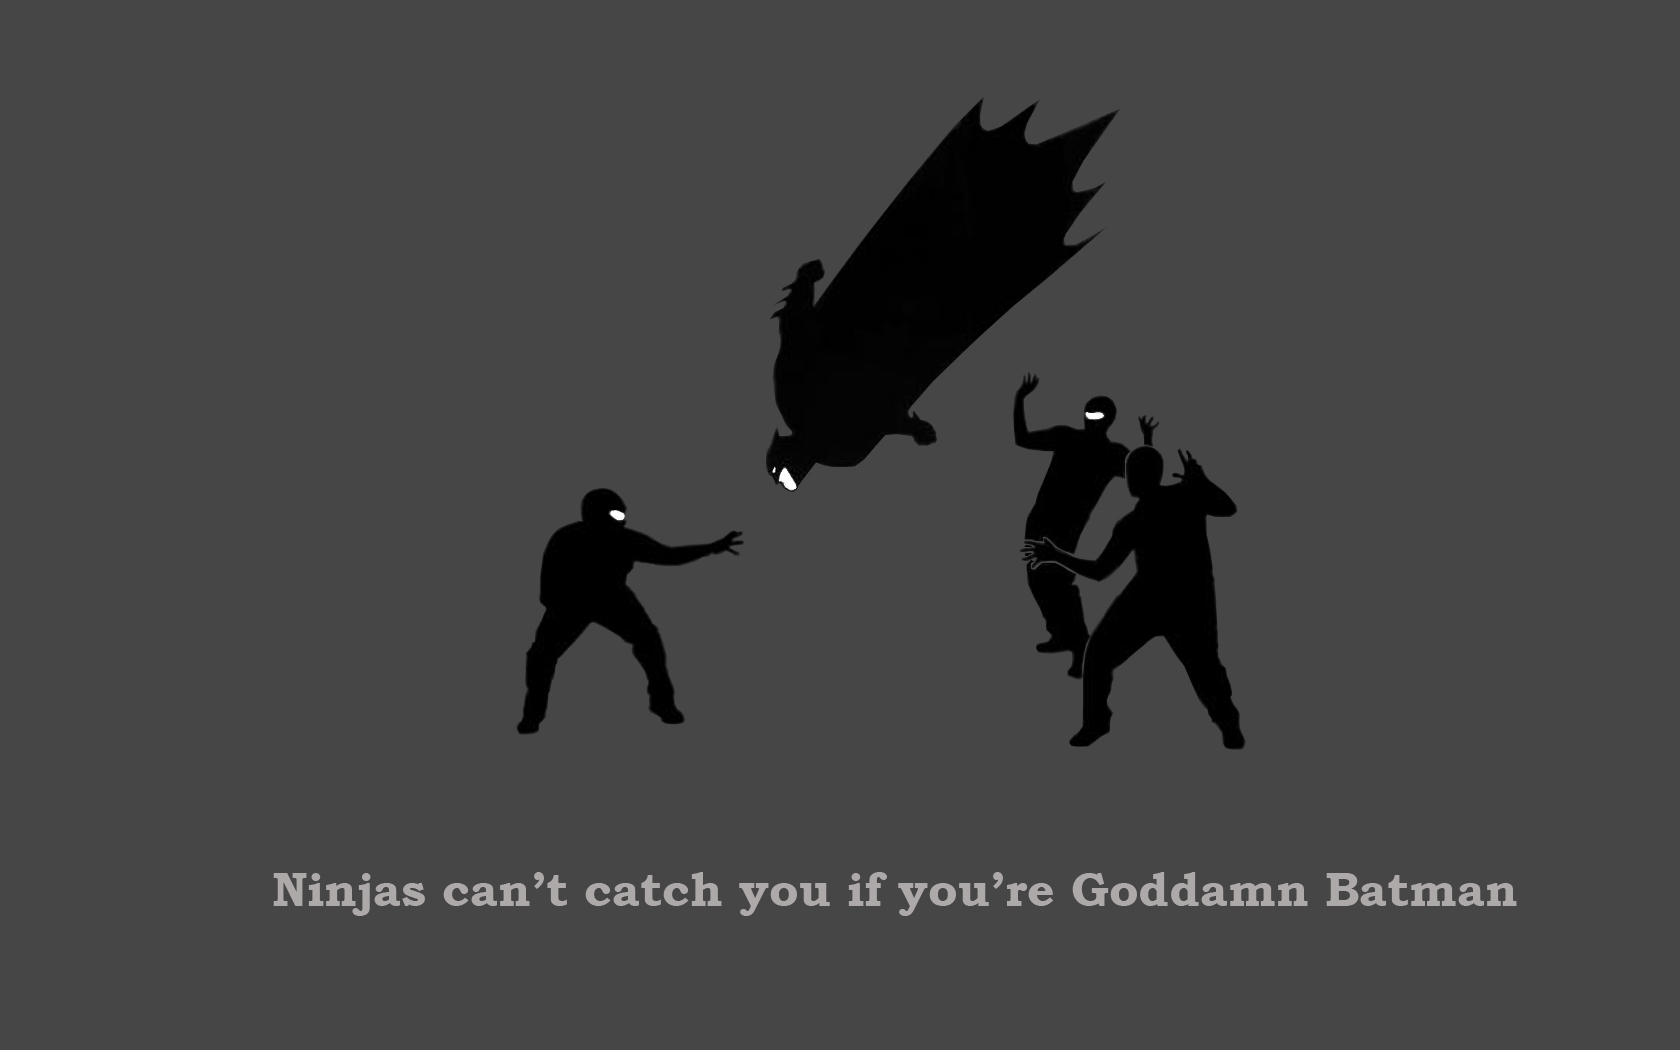 Goddamn Batman ninjas cant